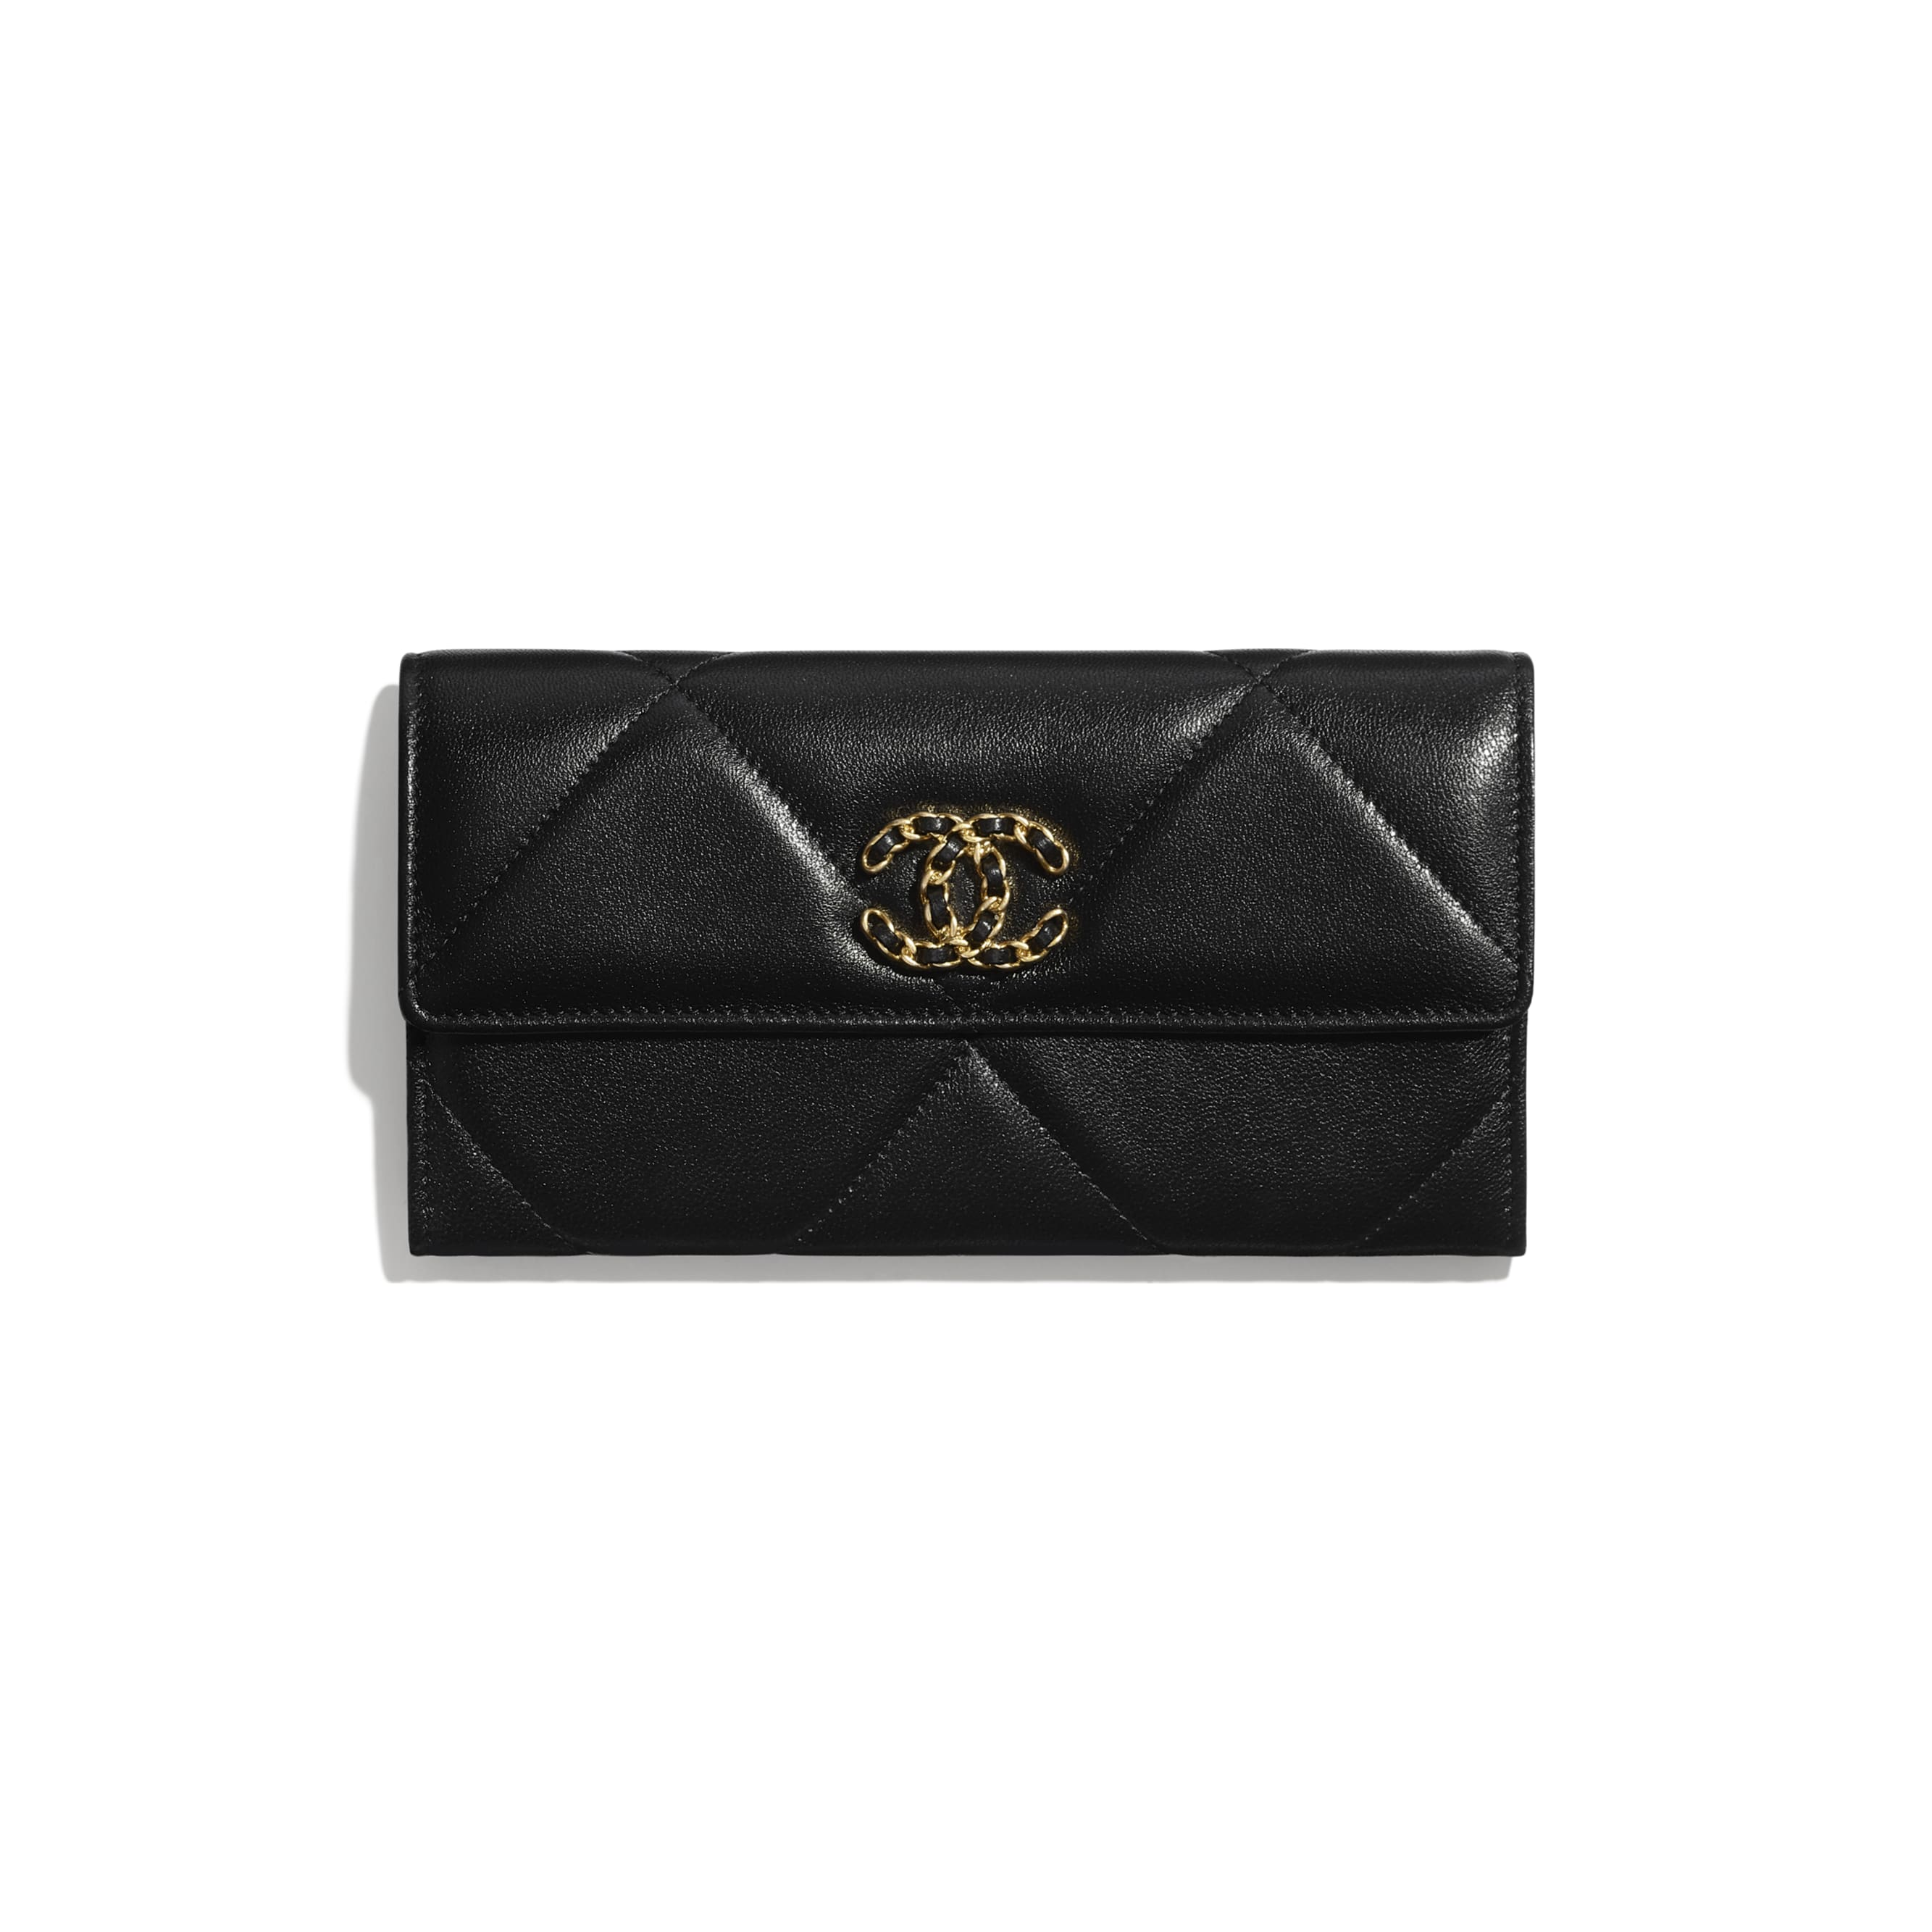 CHANEL 19 Long Flap Wallet - Black - Lambskin, Gold-Tone, Silver-Tone & Ruthenium-Finish Metal - Default view - see standard sized version